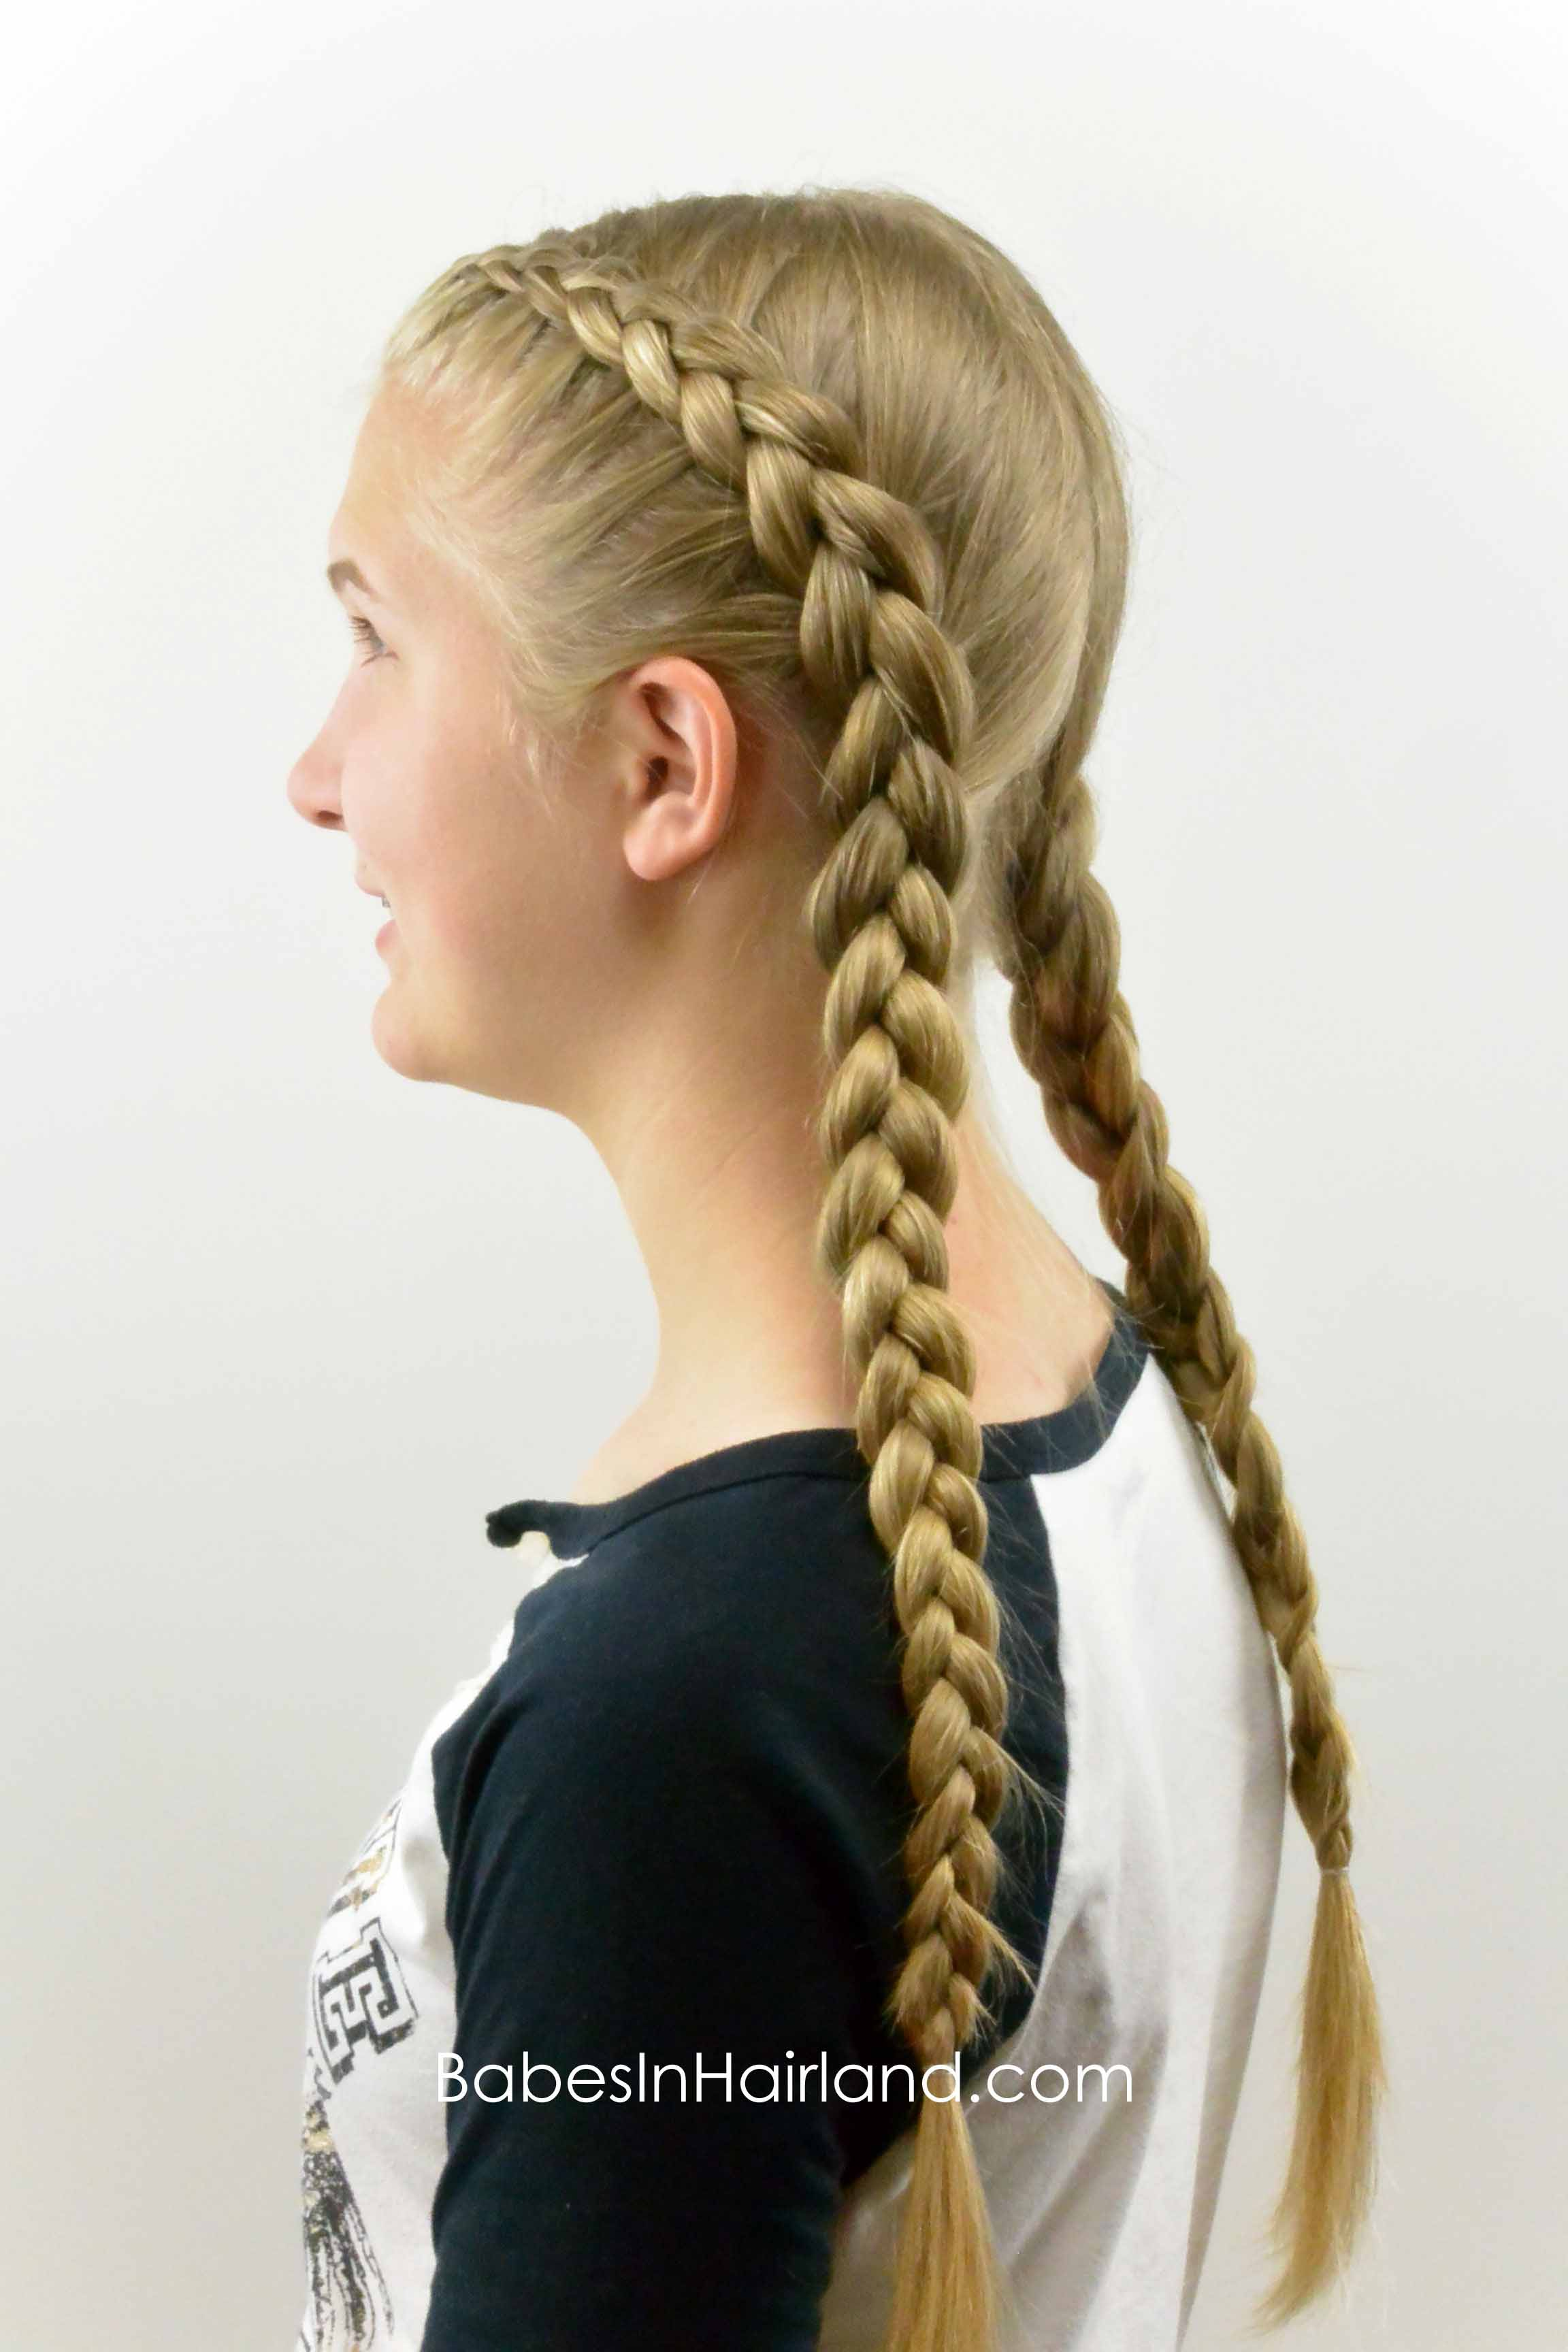 French braiding tips -  How To Tight Dutch Braids On Yourself From Babesinhairland Com Dutchbraid Frenchbraid